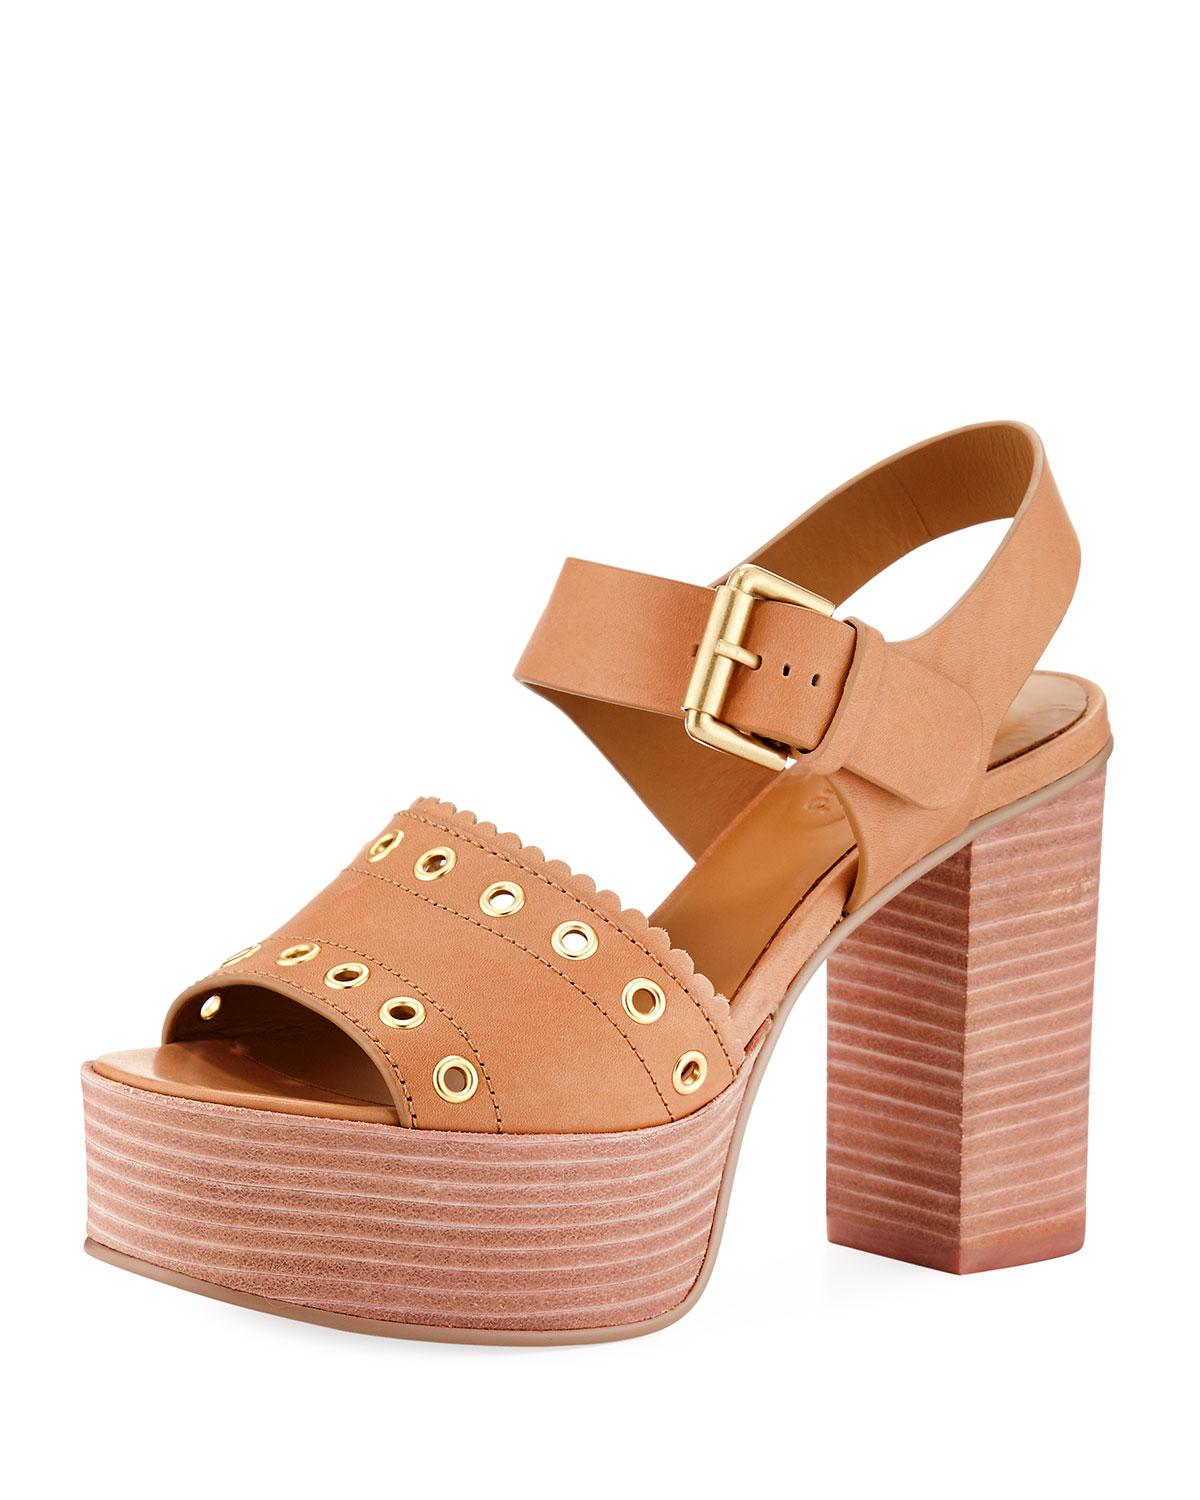 7db5e57420e31a Lyst - See By Chloé Nora Leather Platform Sandals in Brown